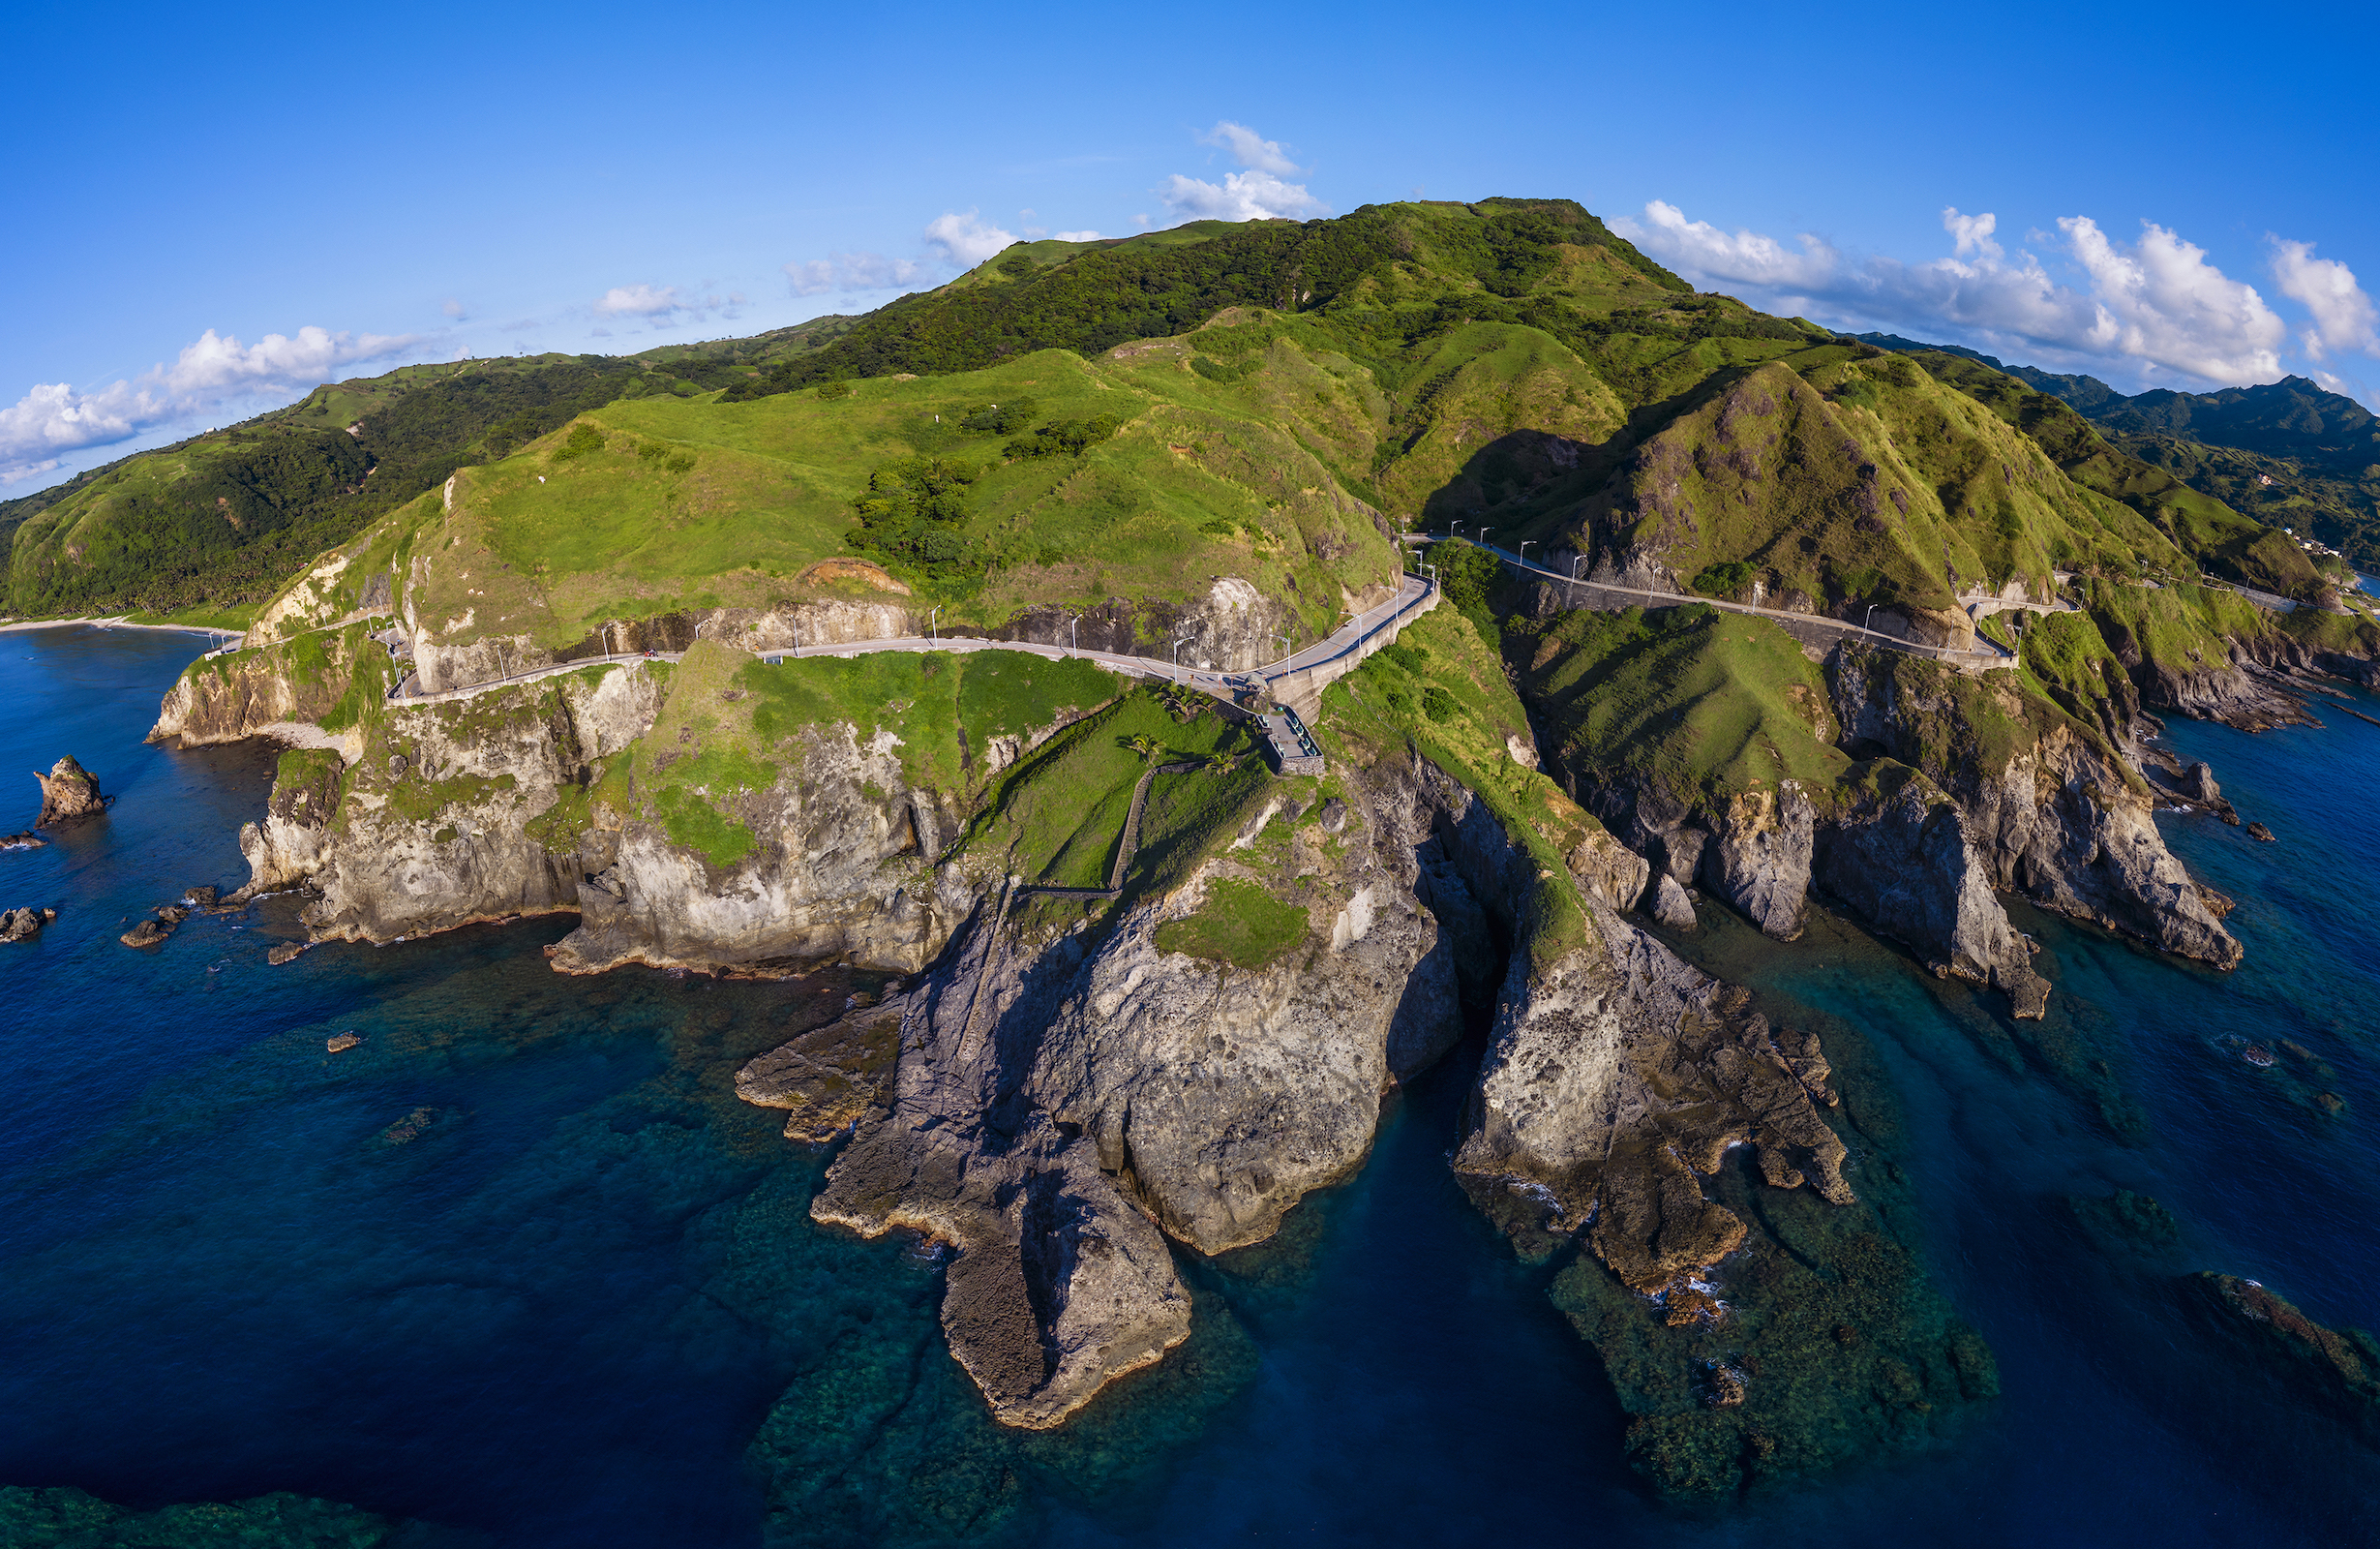 Top view of Batanes